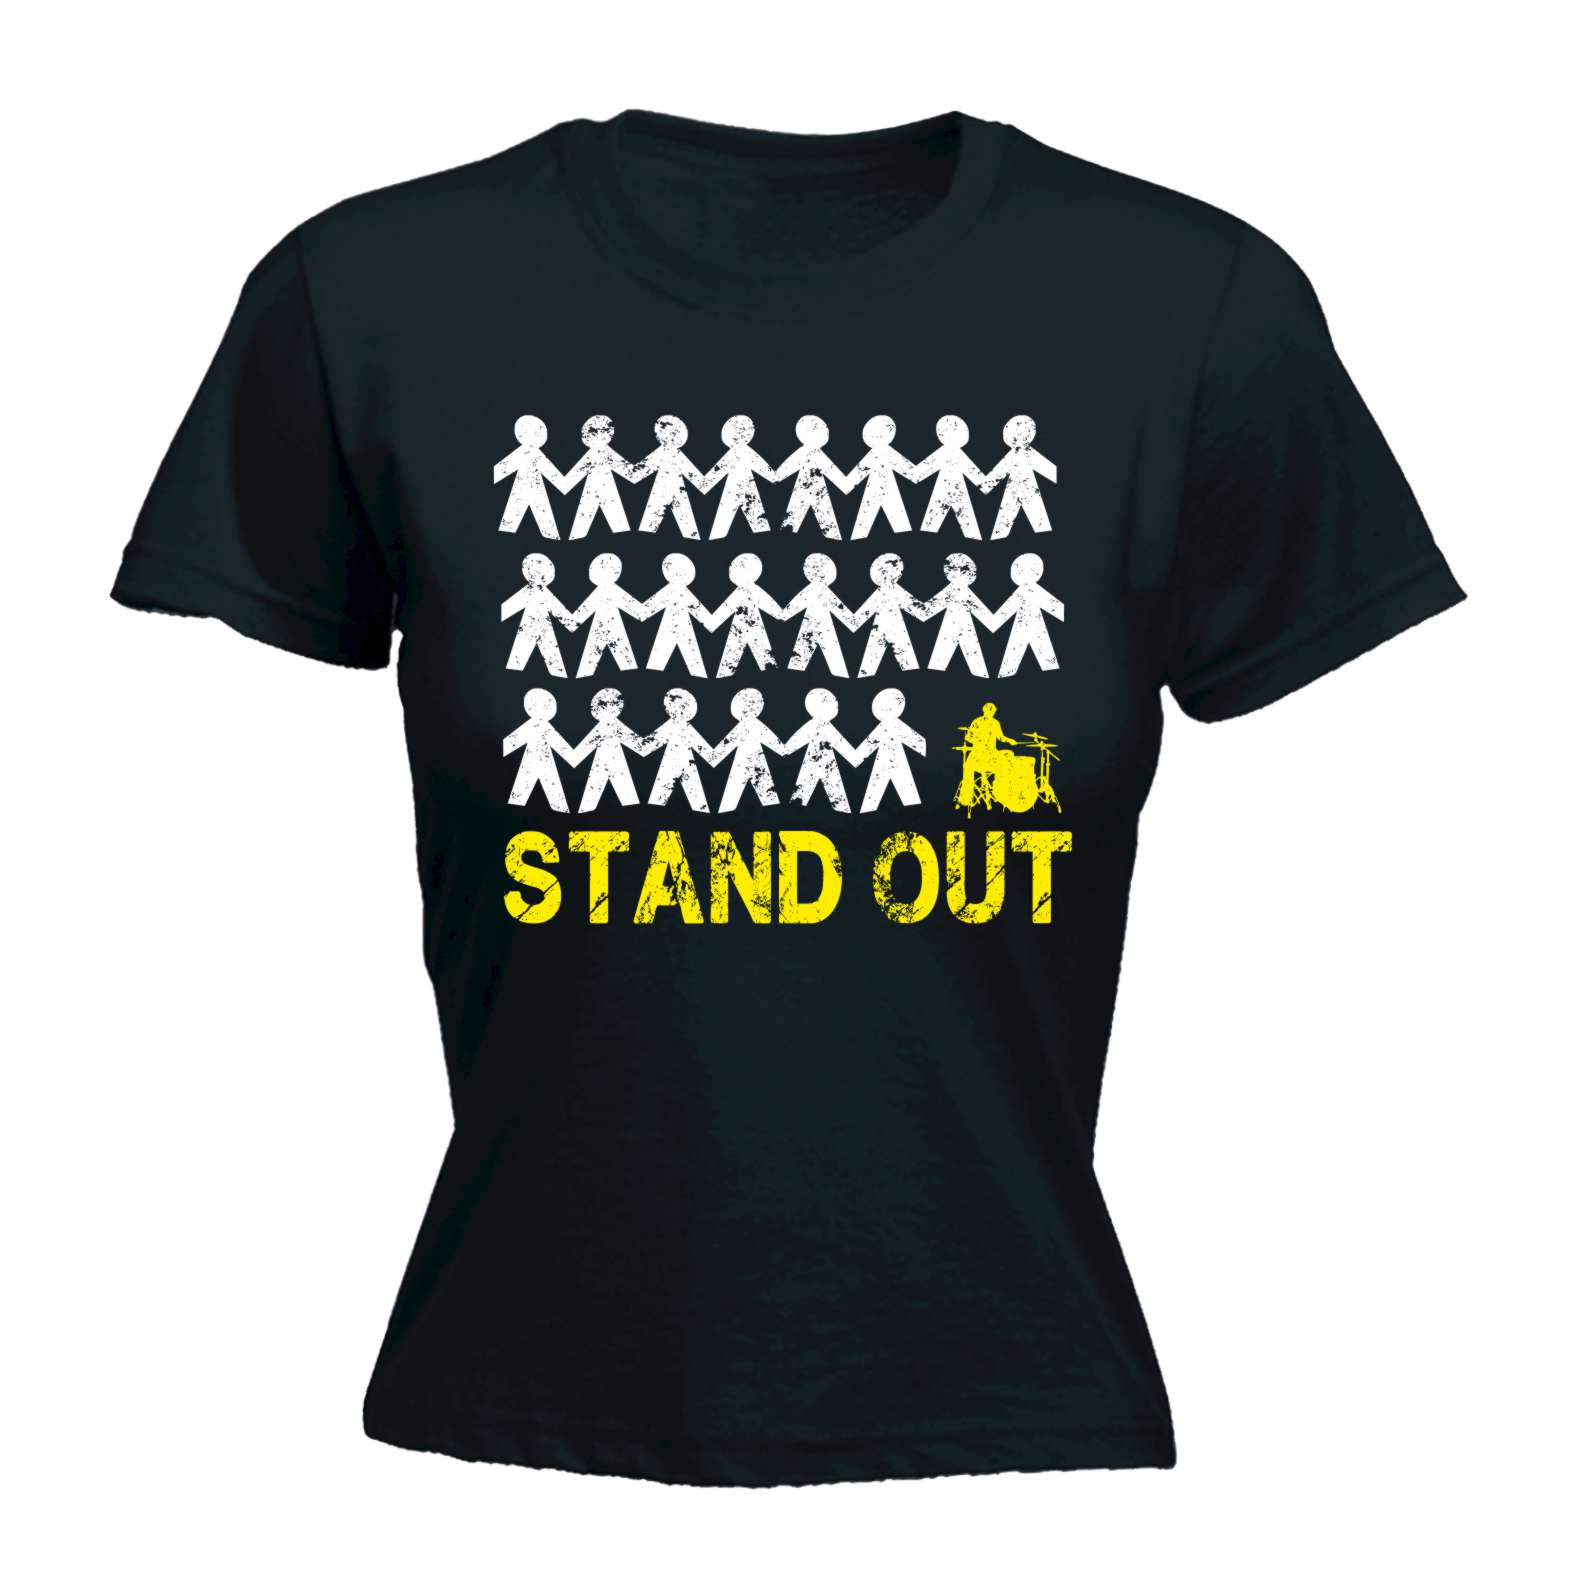 Stand out designs t shirts : Funny joke women s stand out drum drummer band show